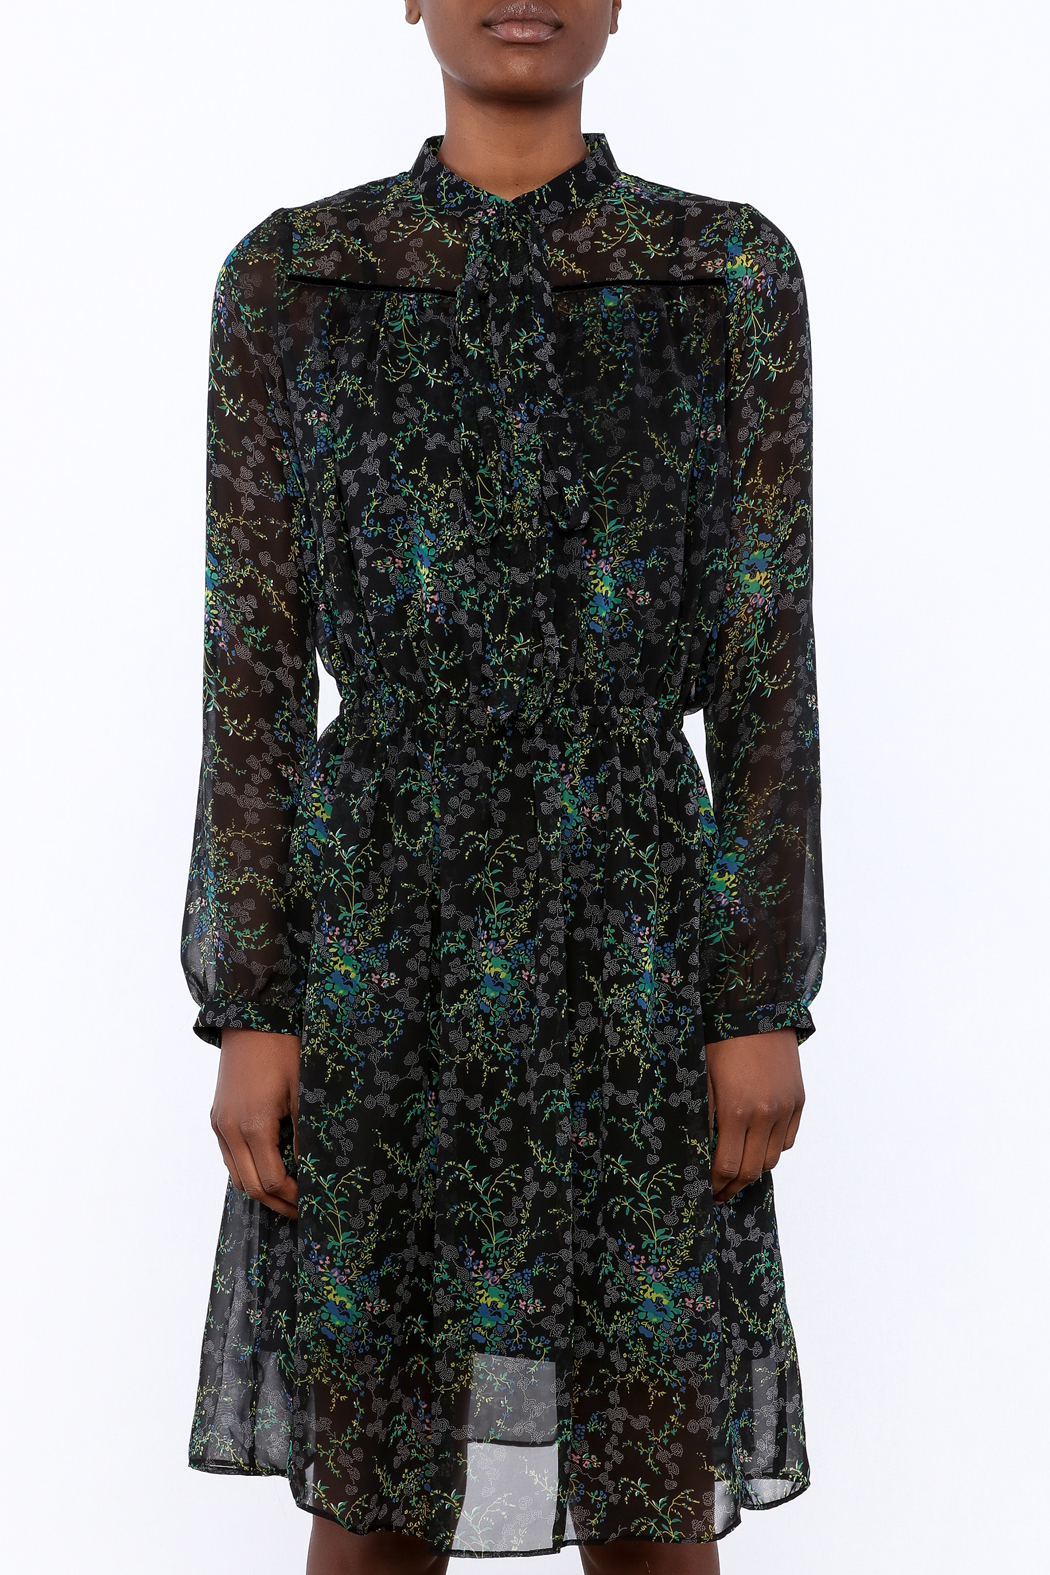 BEULAH STYLE Sheer Floral Dress - Side Cropped Image